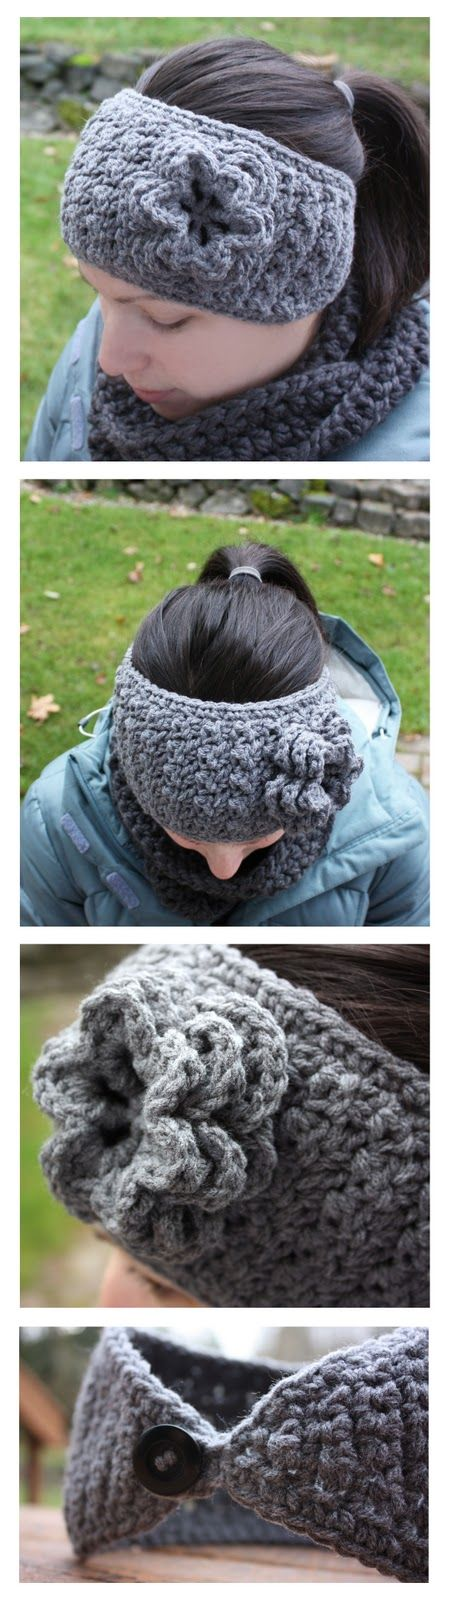 Here is a quick crochet project I wanted to share. I worked this one up last night while the hubs and I watched a movie. I followed a pattern from www.crochetme.com called Quick Winter Headband. The only part I changed was the end. I created a 7 chain loop on one end and sewed a …